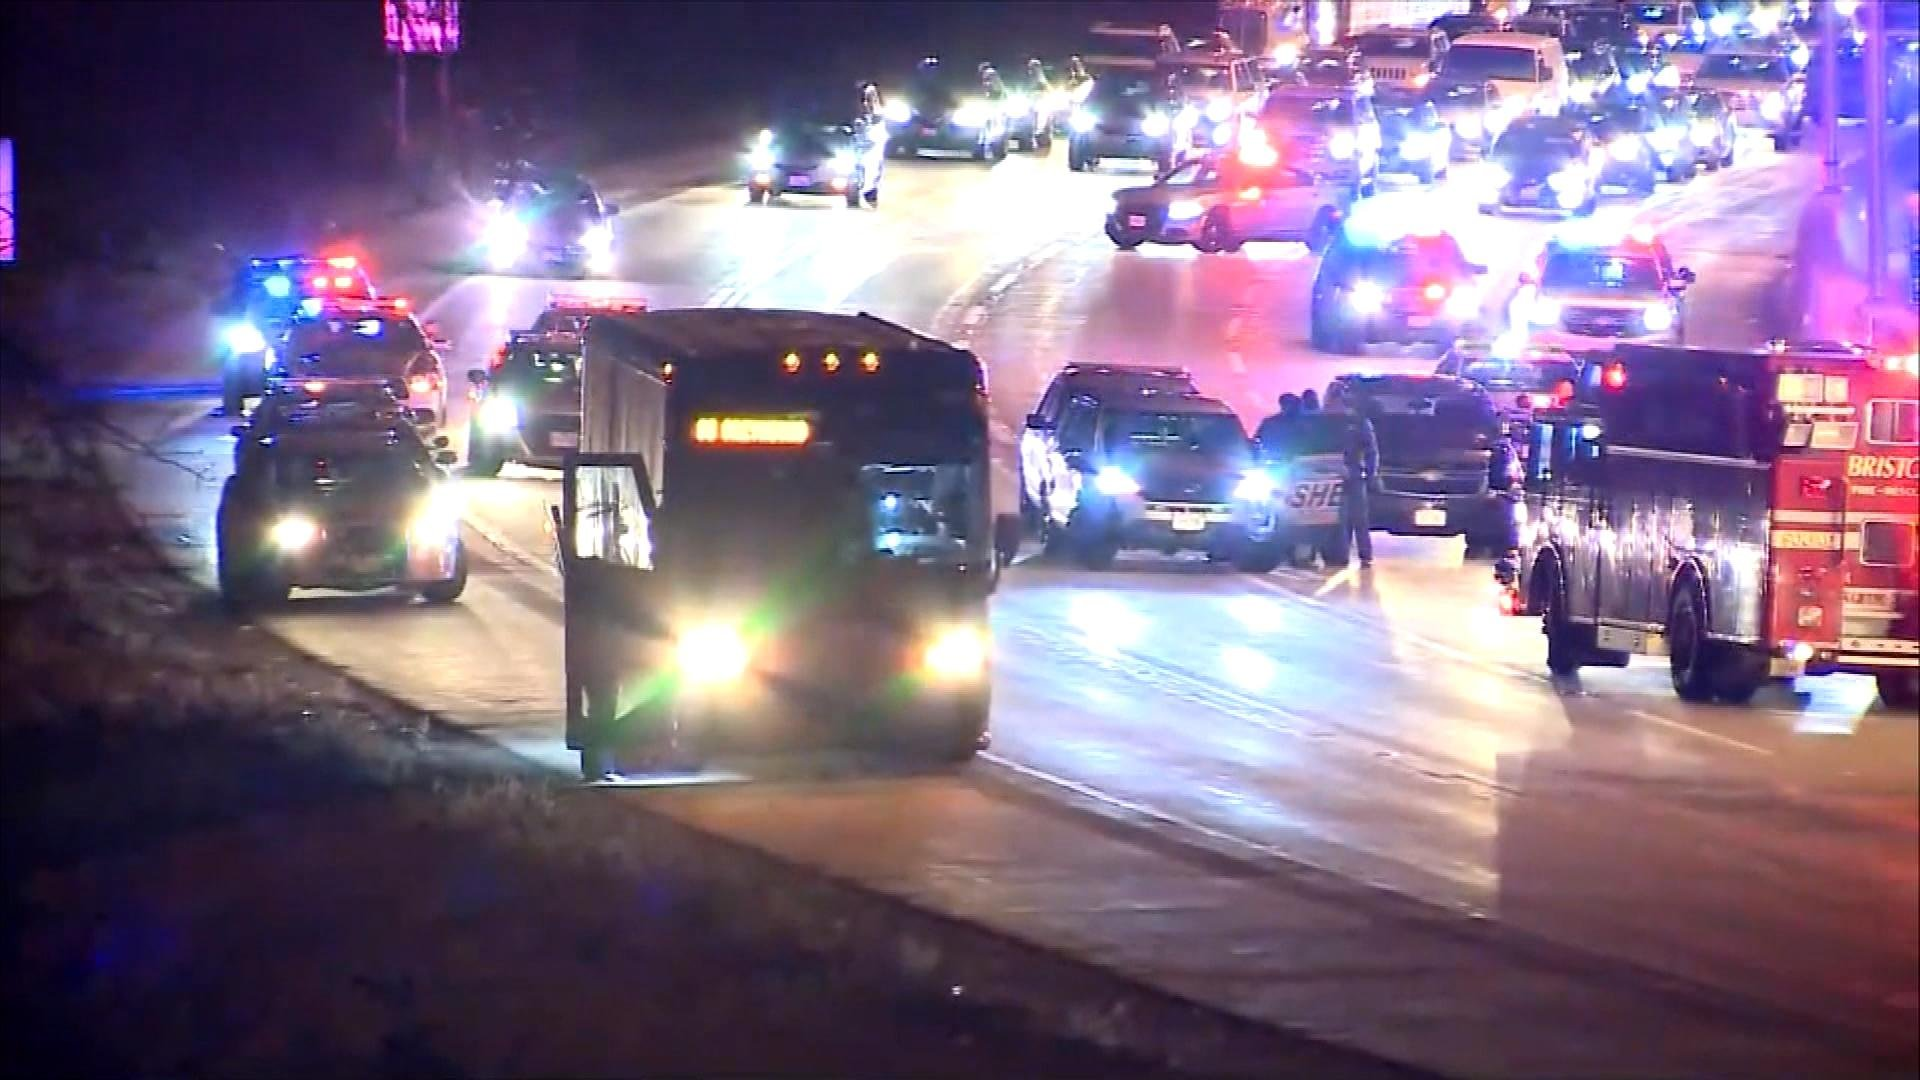 Armed man in custody following Greyhound bus police chase